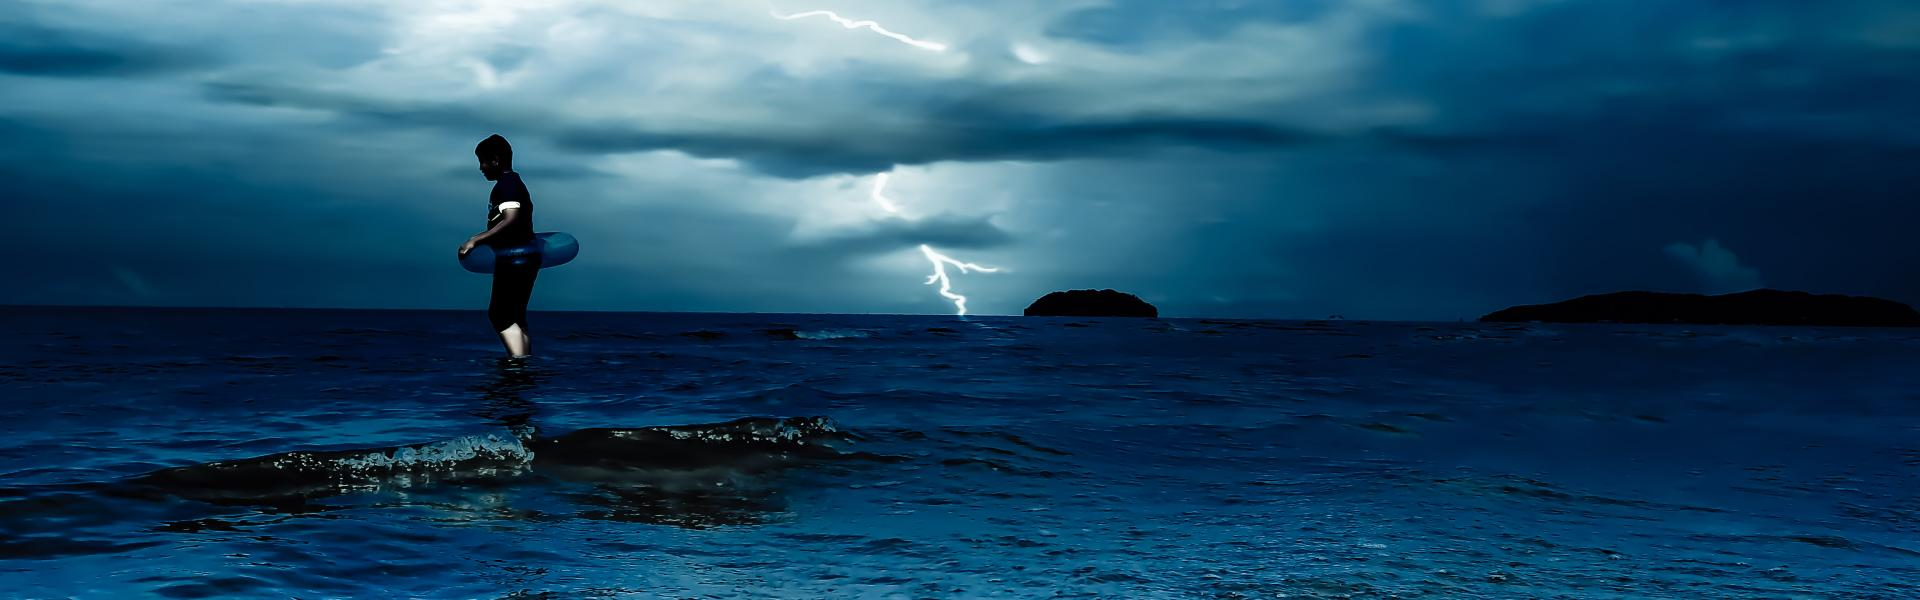 a storm on the ocean